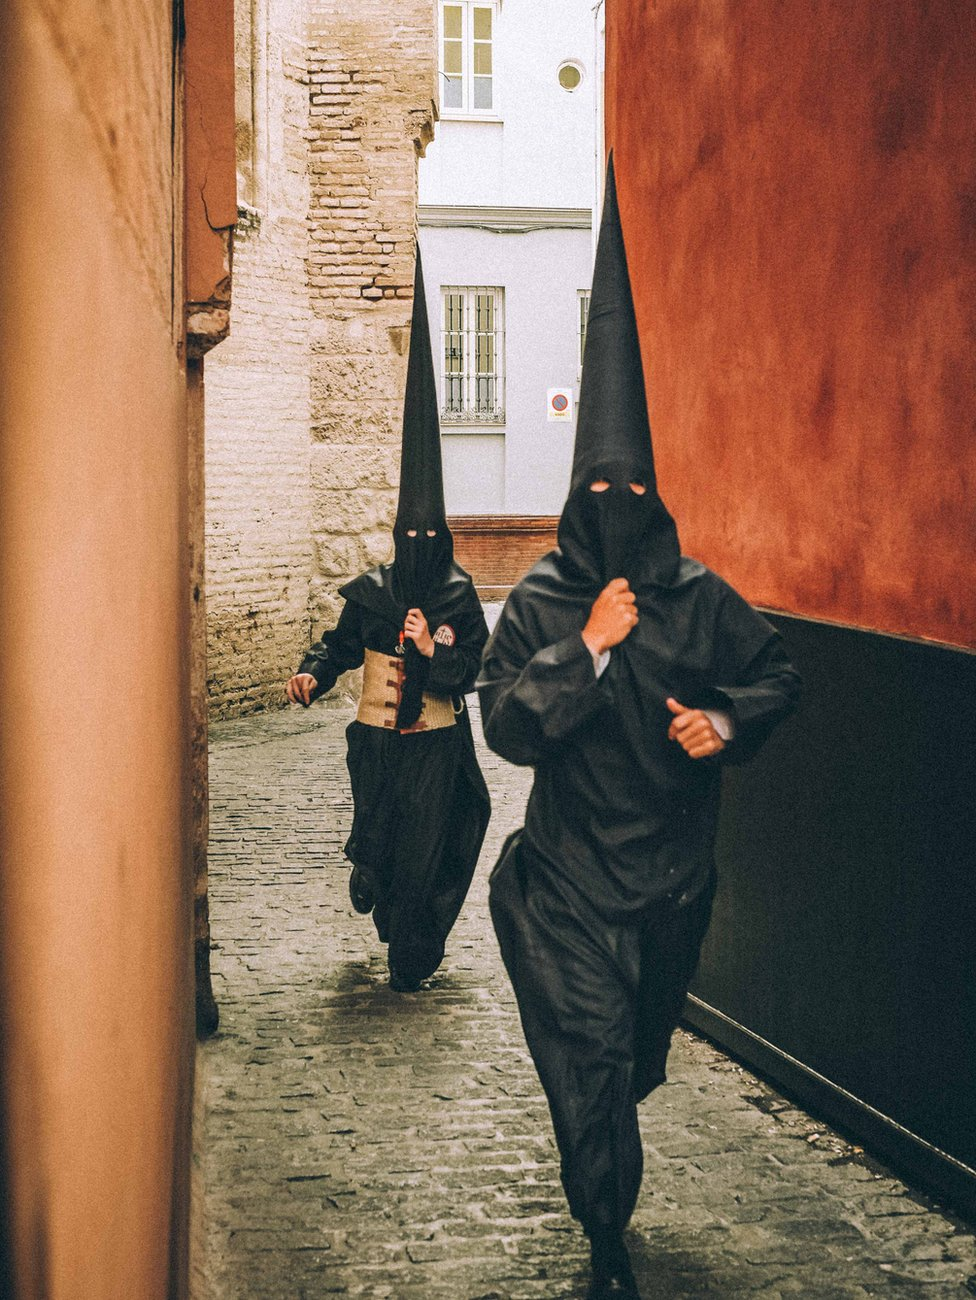 Two people running to a procession in Seville